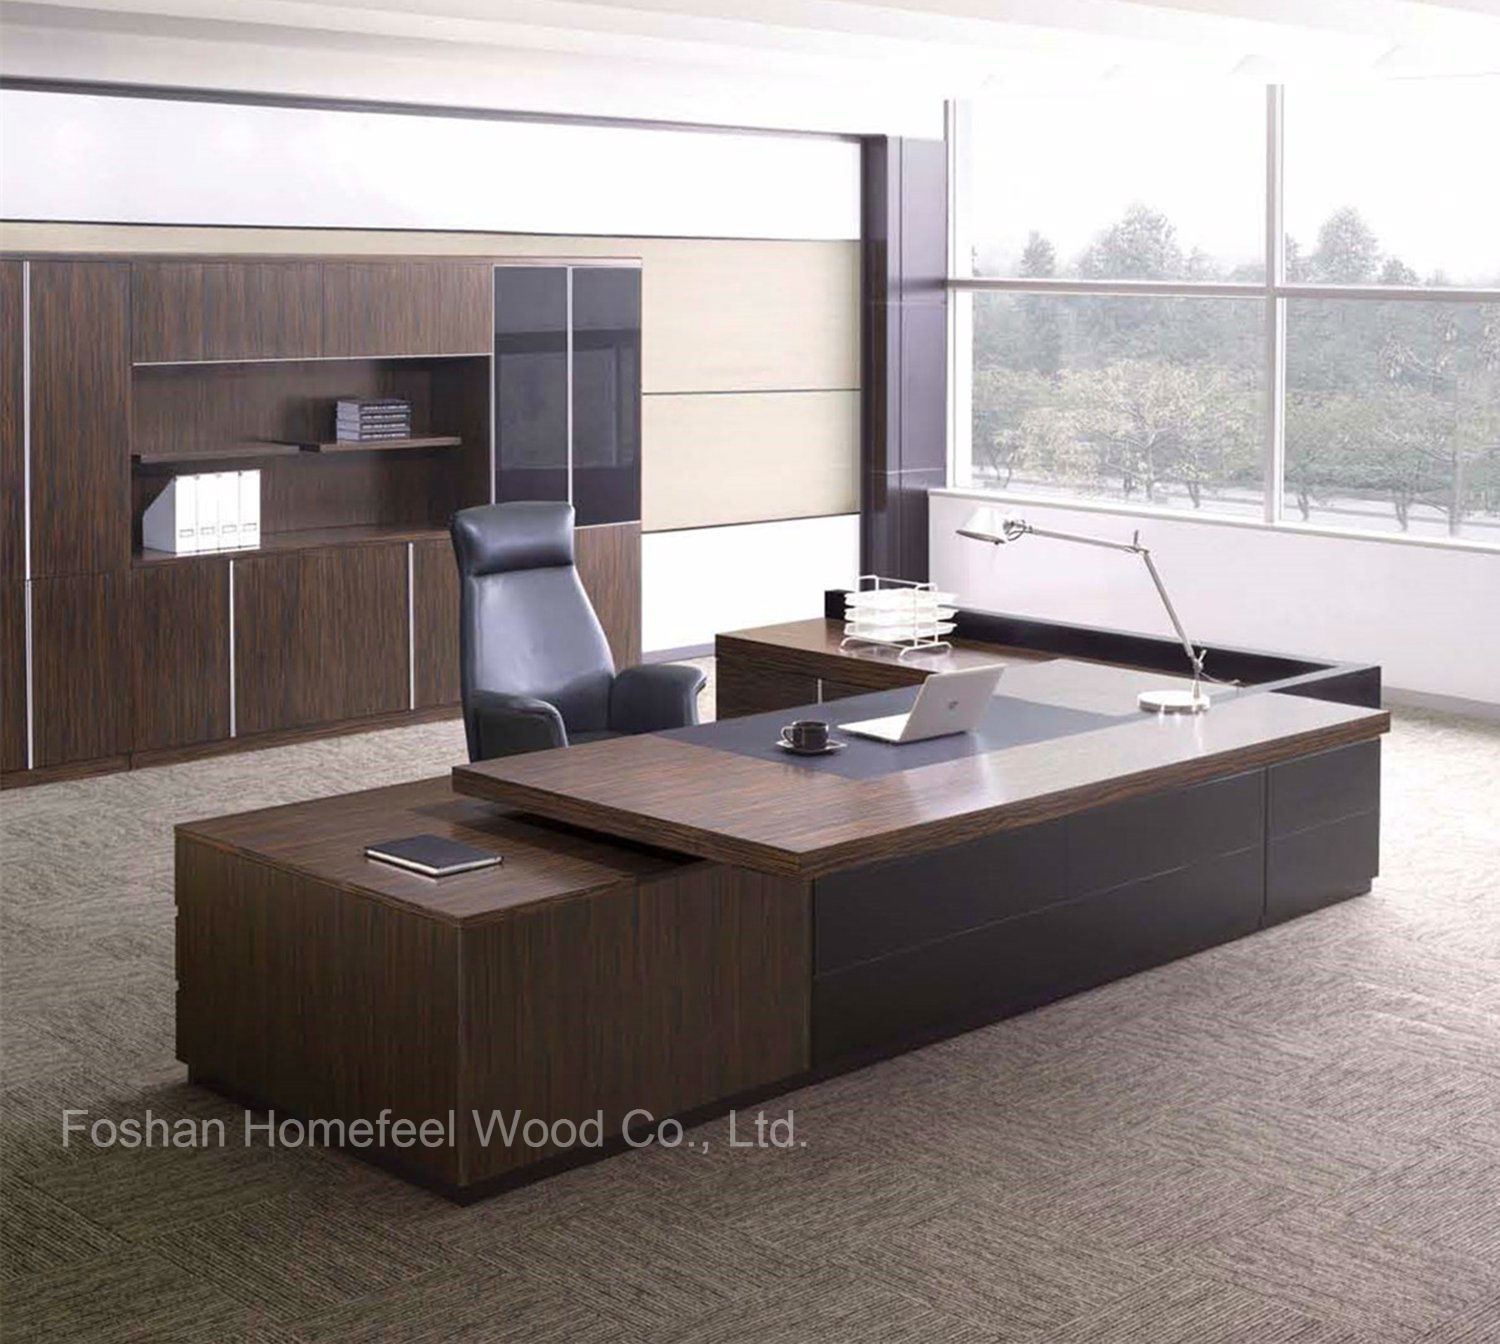 china modern wooden office furniture desk for sale executive ceo office table hf mbhd3926. Black Bedroom Furniture Sets. Home Design Ideas